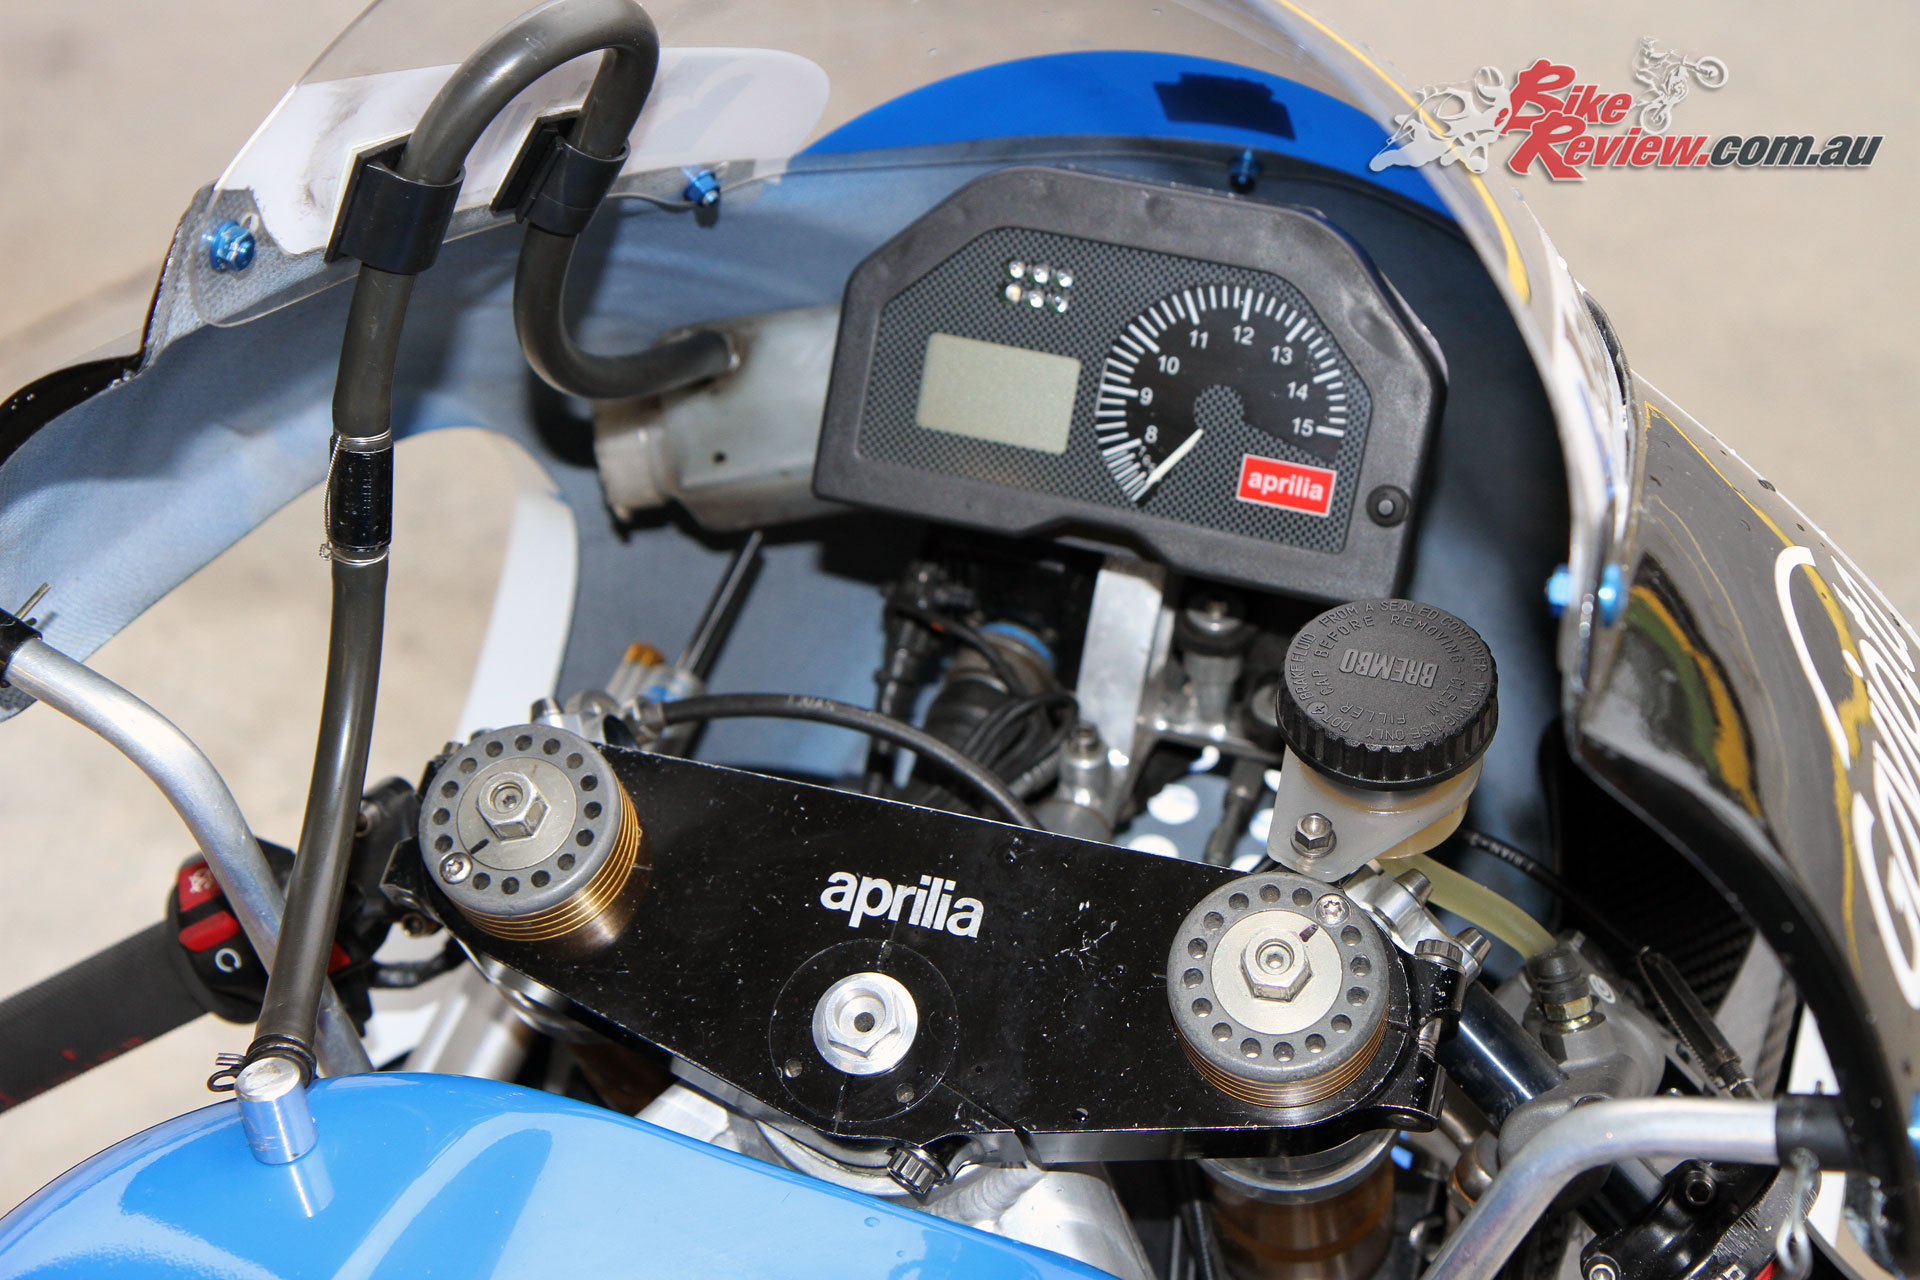 The factory Aprilia dash is actually extremely high tech, with the RSW250 including traction control and full telemetry.